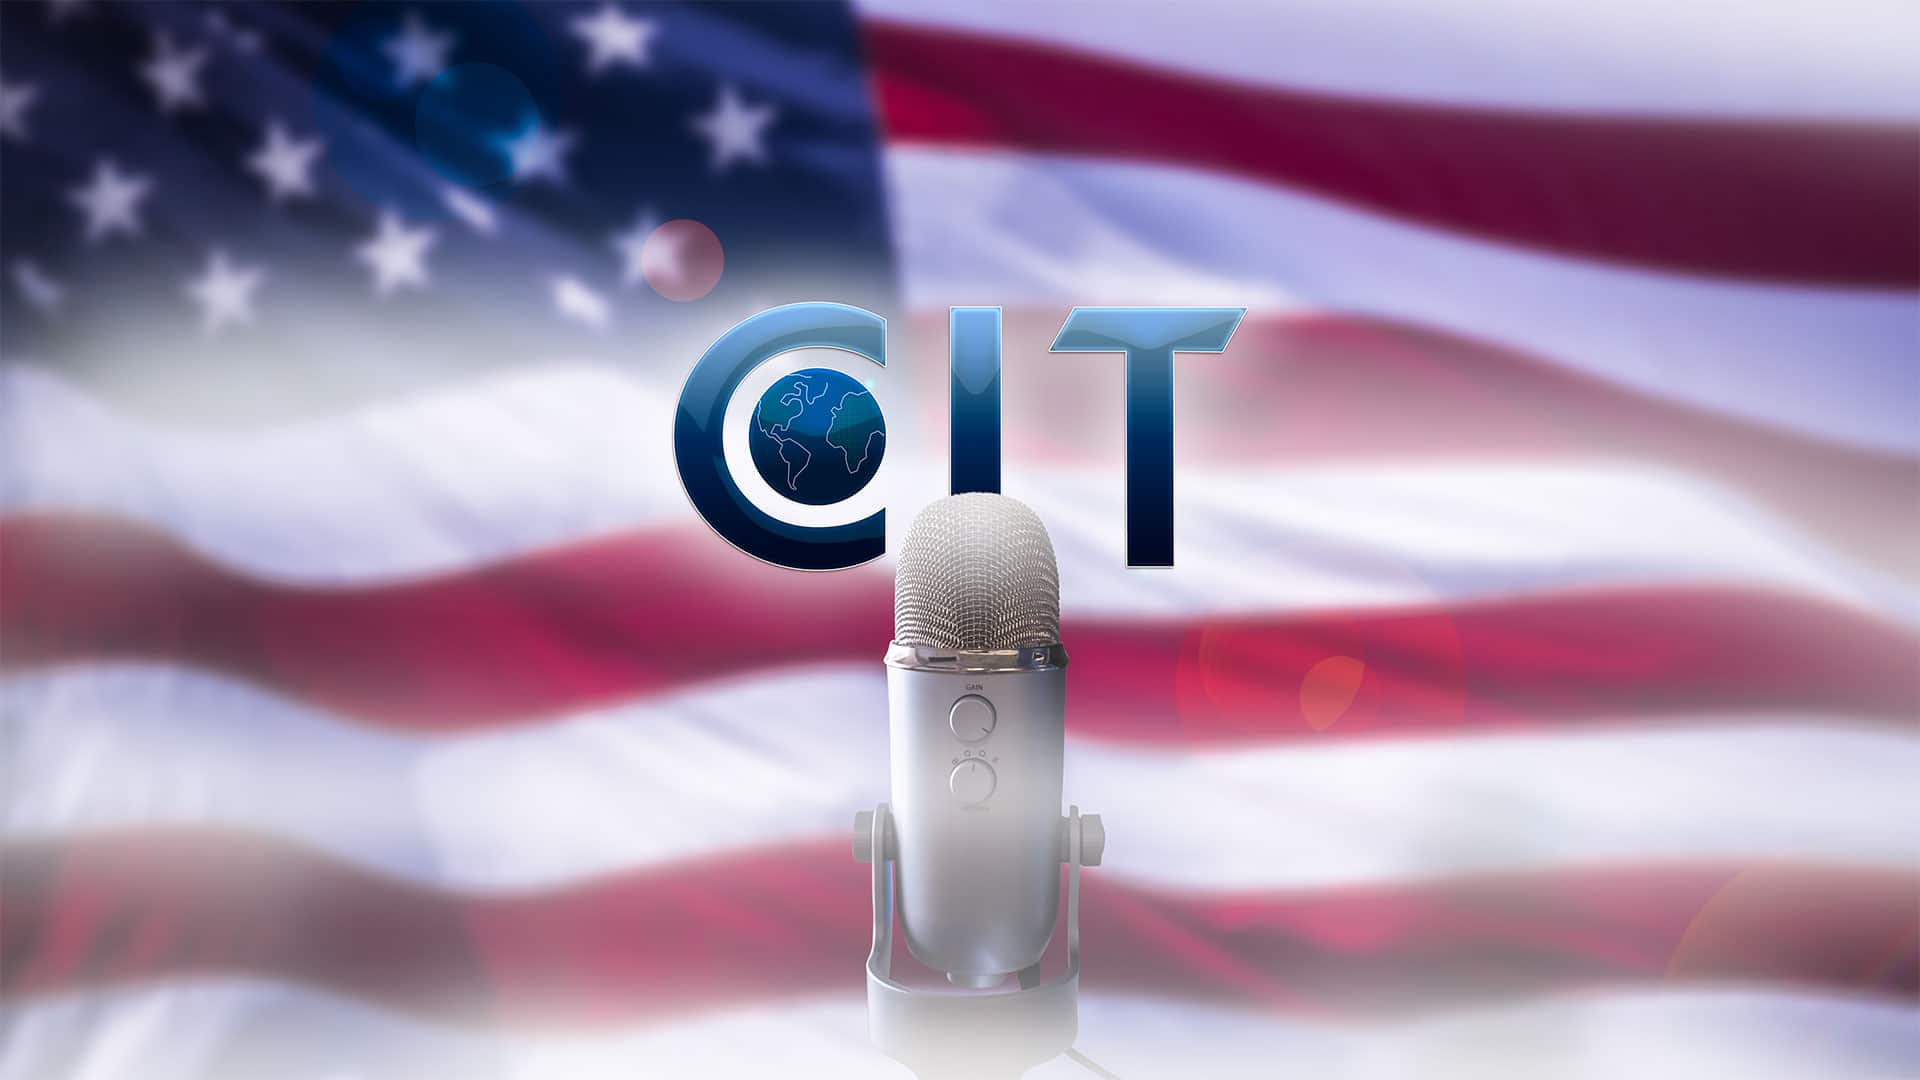 CIT: Cal Interpreting & Translations Services serves the United States, Territories and Districts